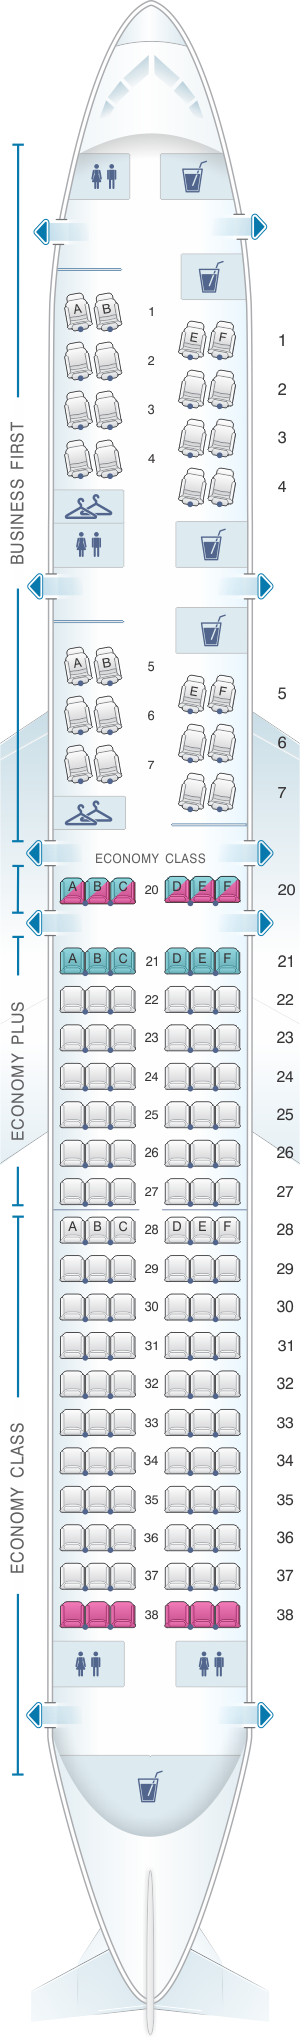 Seat map for United Airlines Boeing B757 200 (752) - version 2